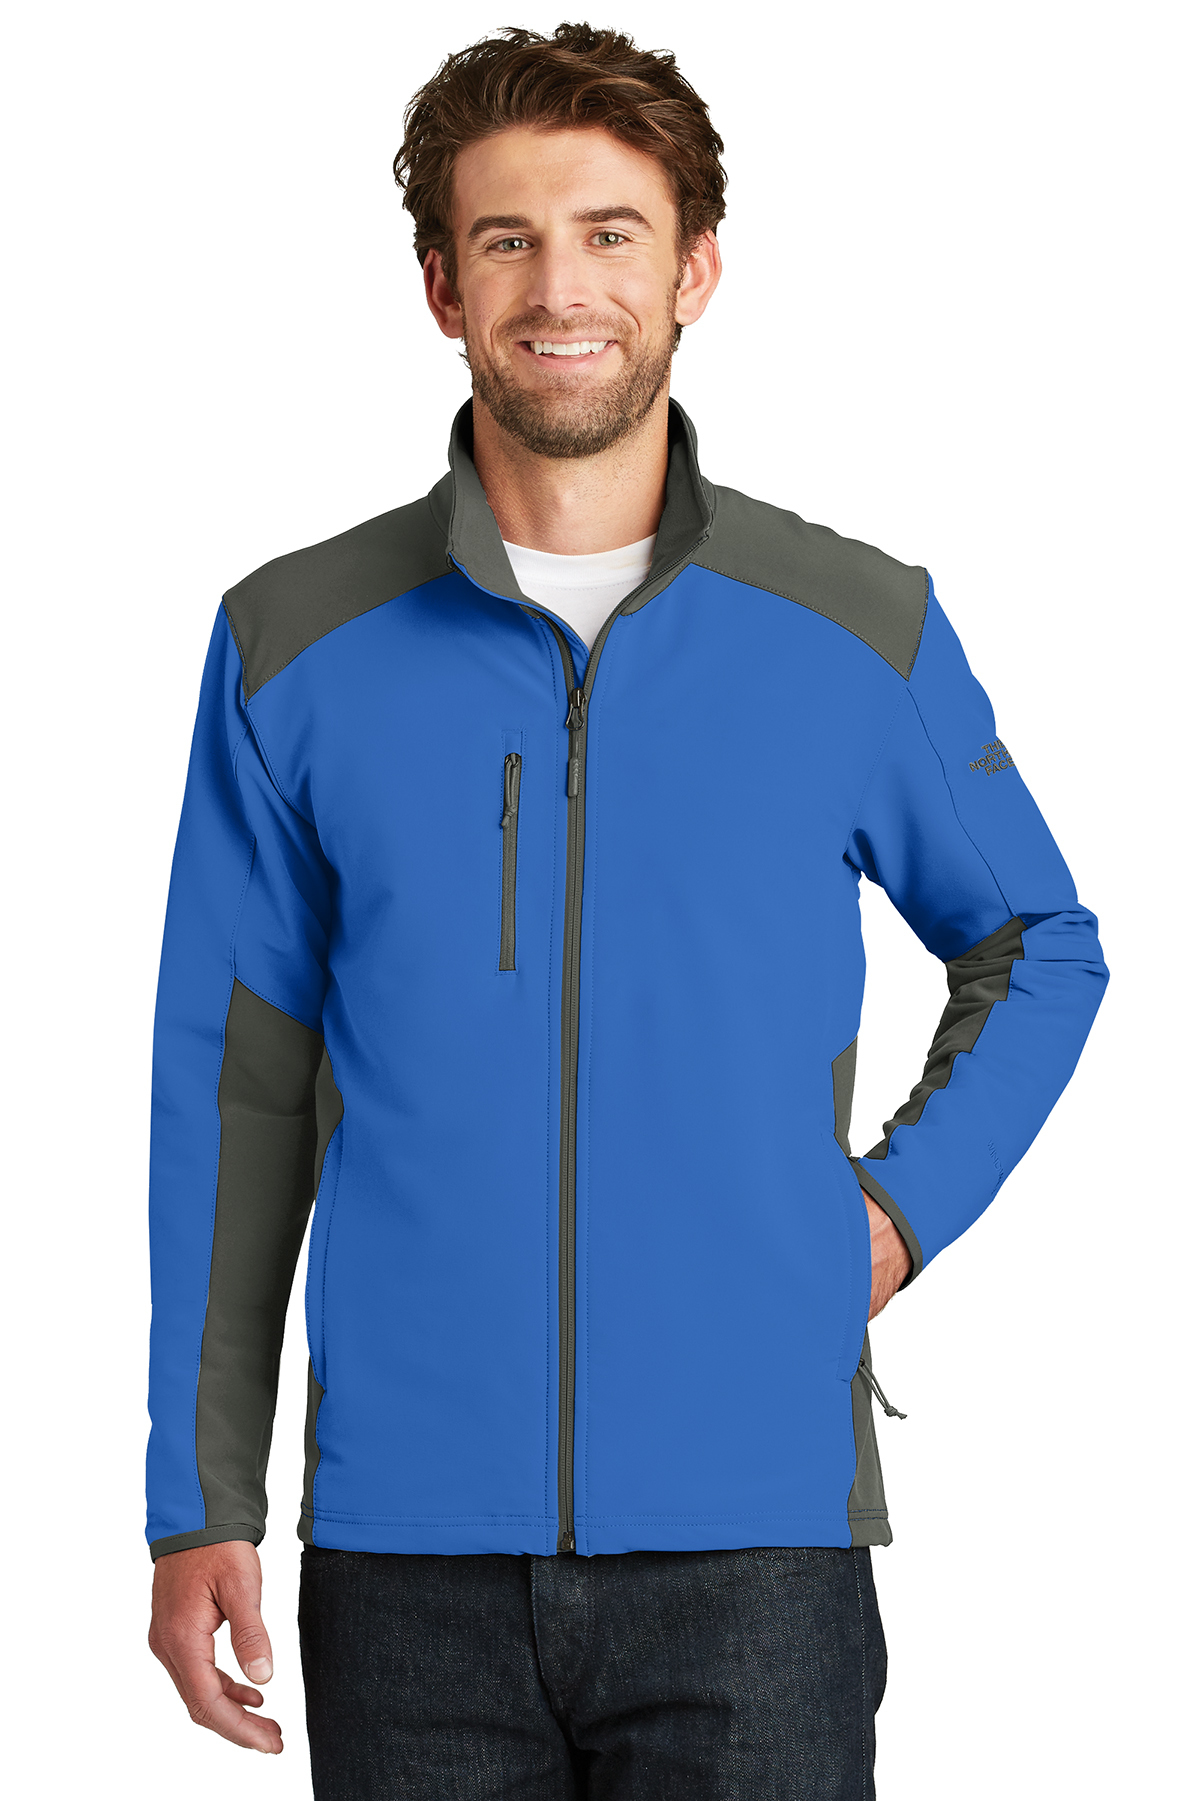 The North Face® NF0A3LGV - Men's Tech Stretch Soft Shell Jacket